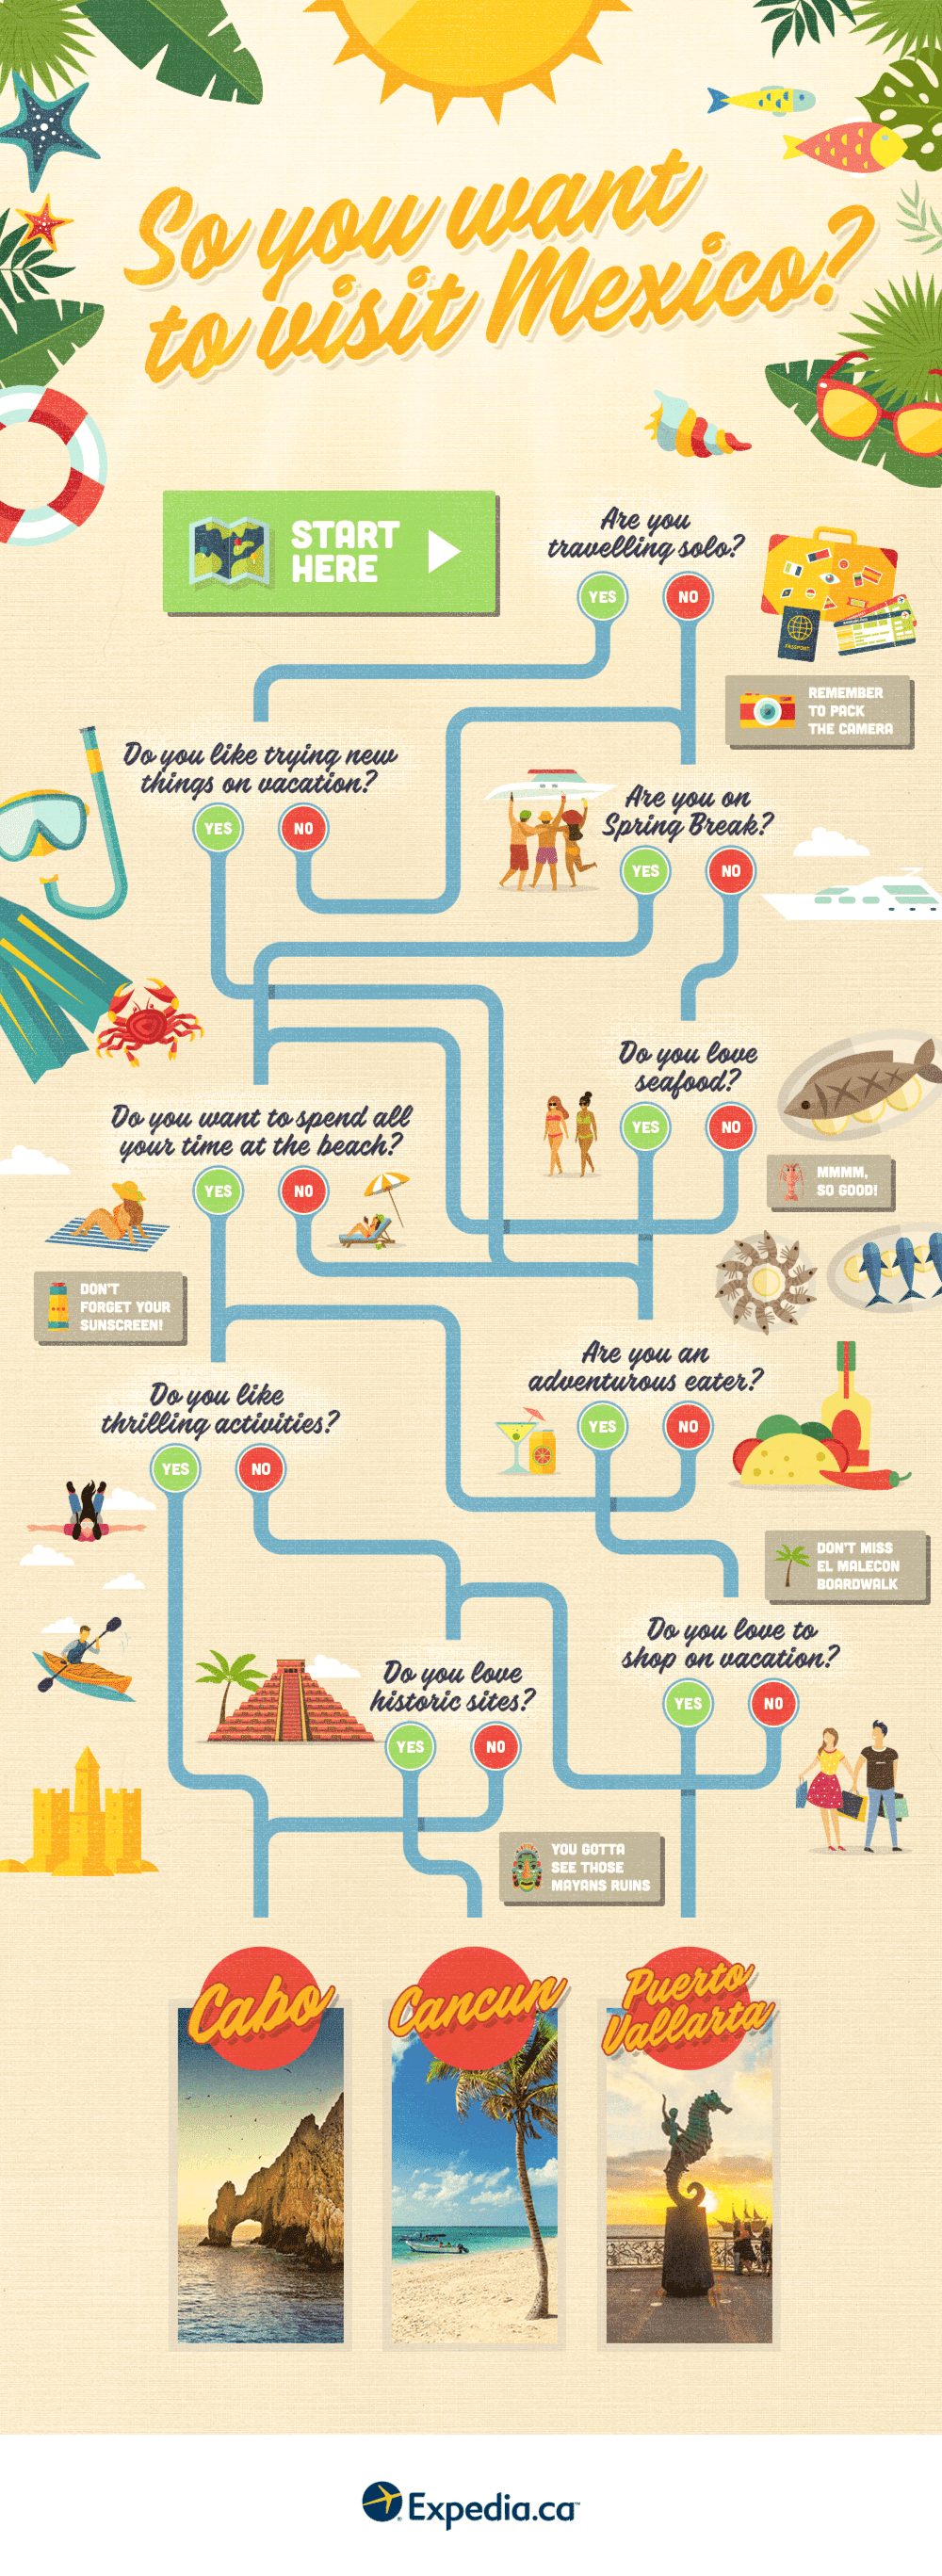 A decision tree to figure out if visiting Cabo, Cancun, or Puerto Vallarta is right for you